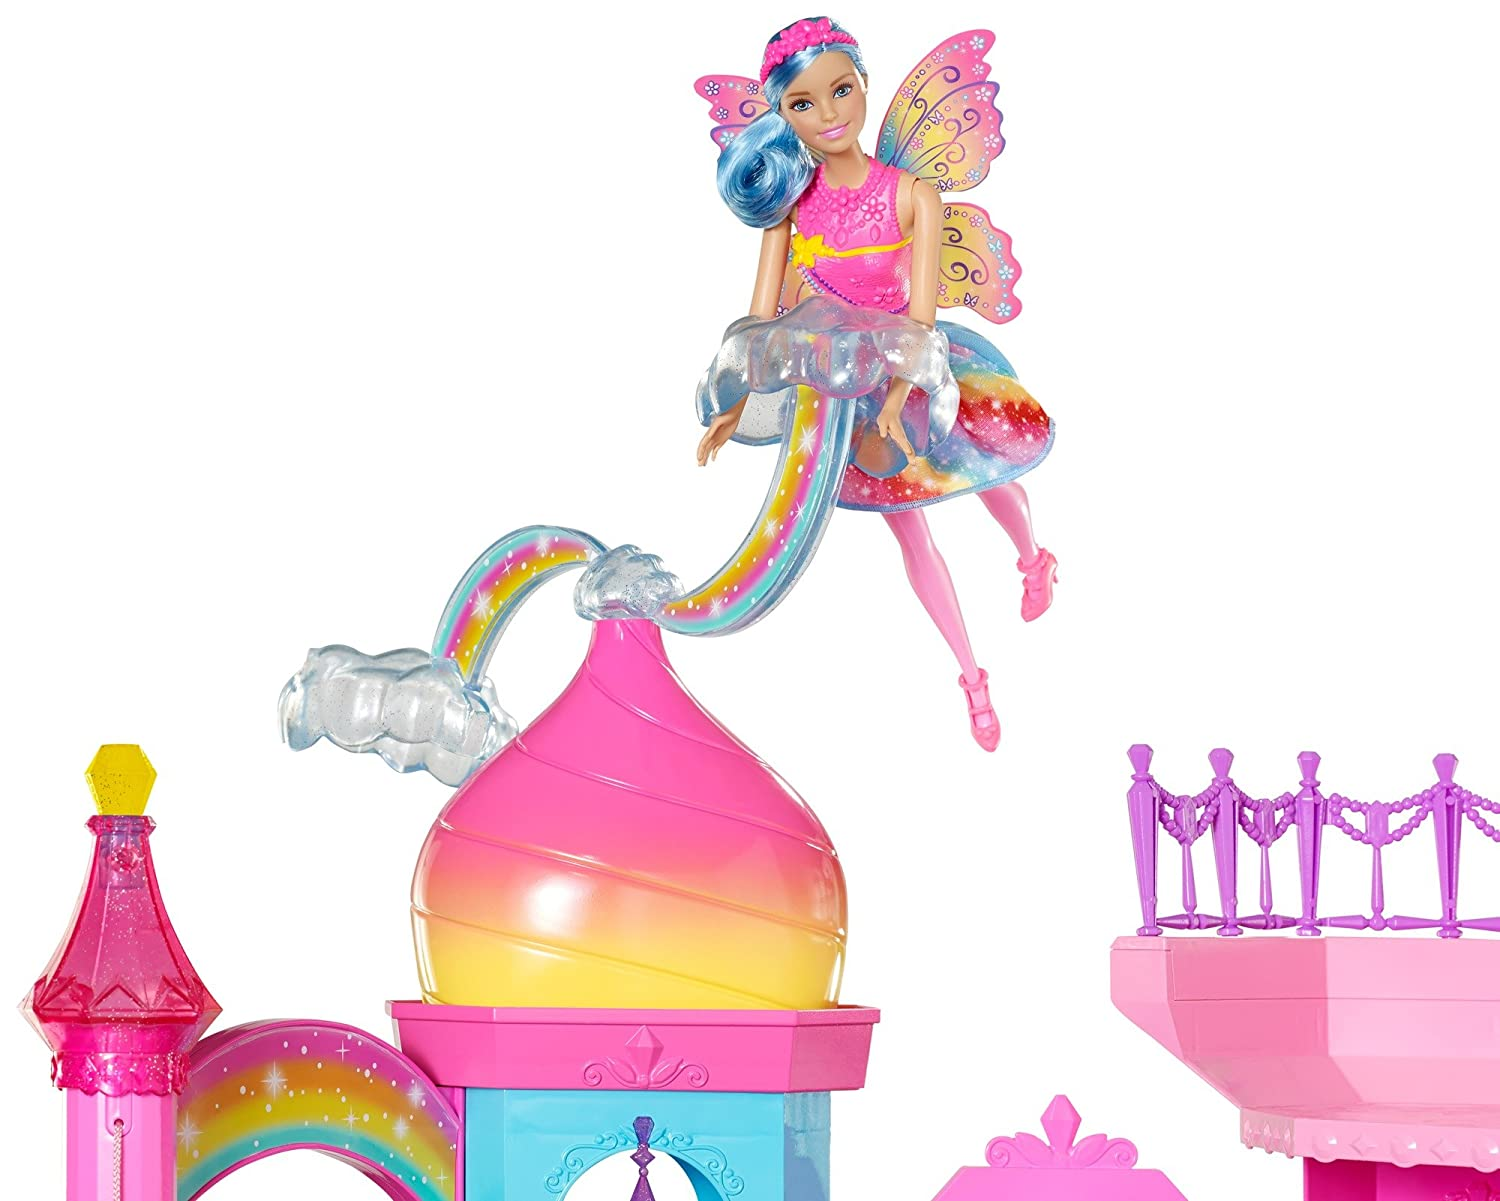 A fairy flies above this Barbie castle playset